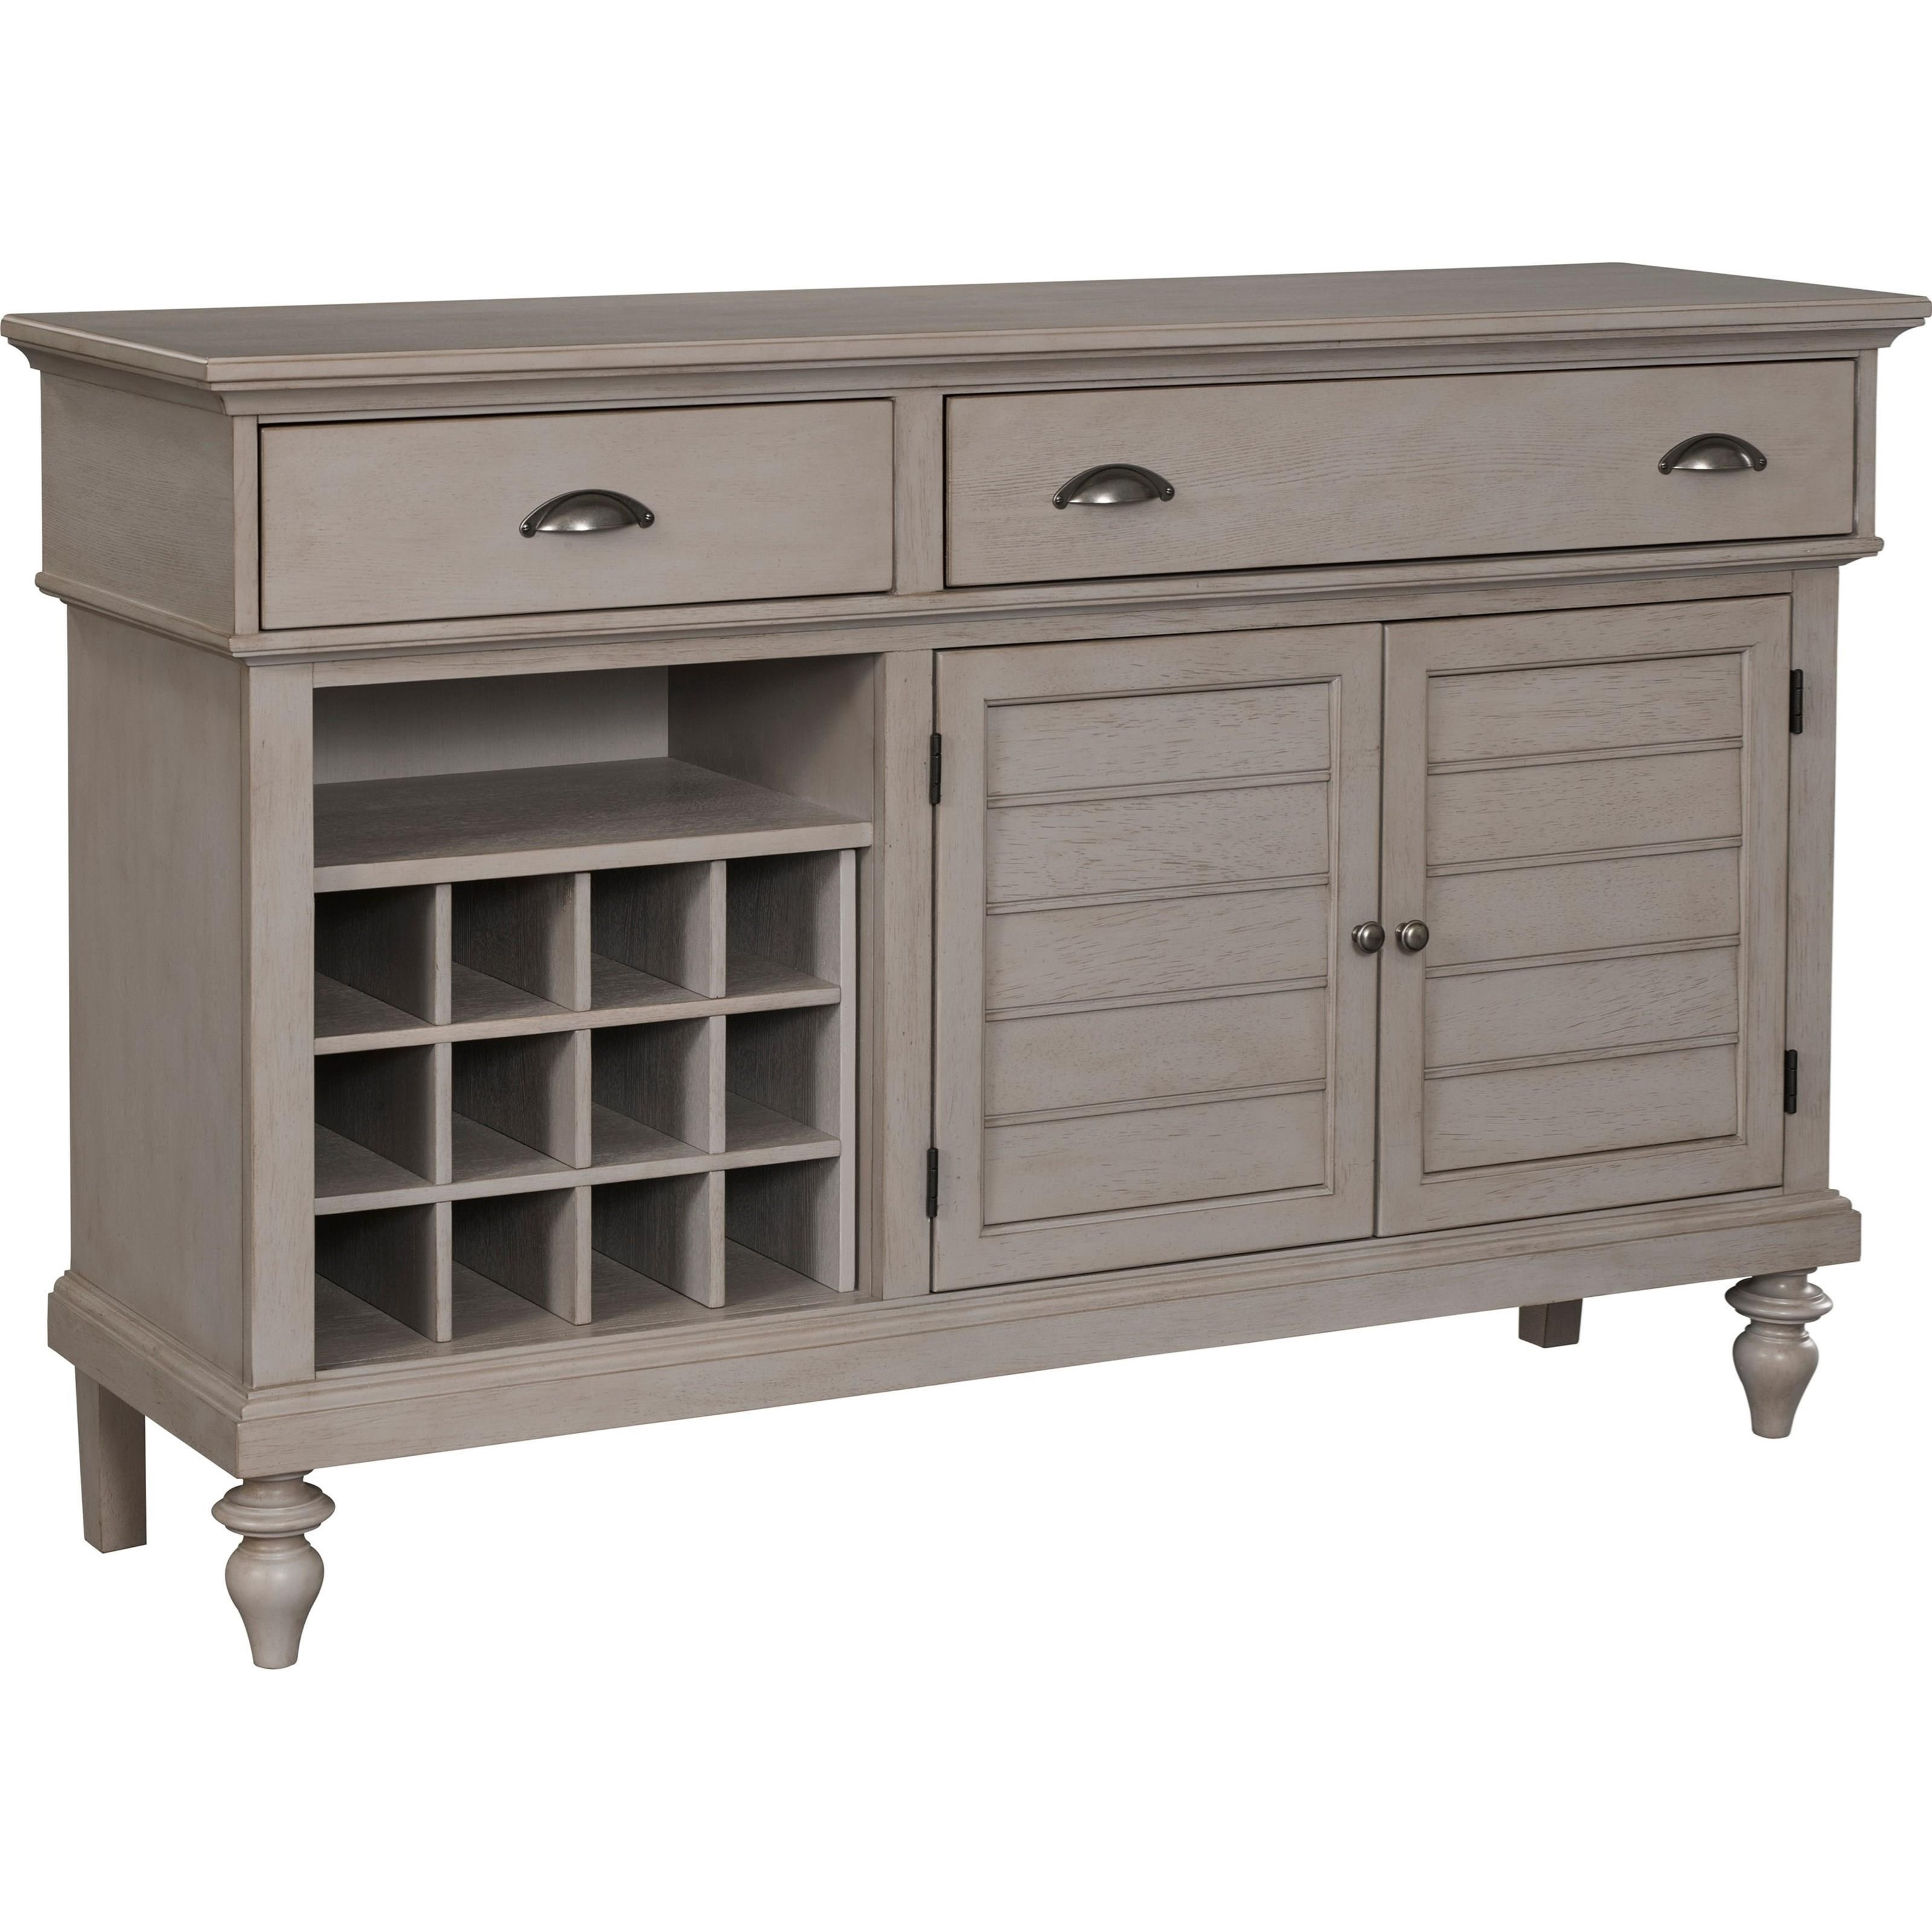 Broyhill Furniture Ashgrove Buffet - Item Number: 4547-513PUT